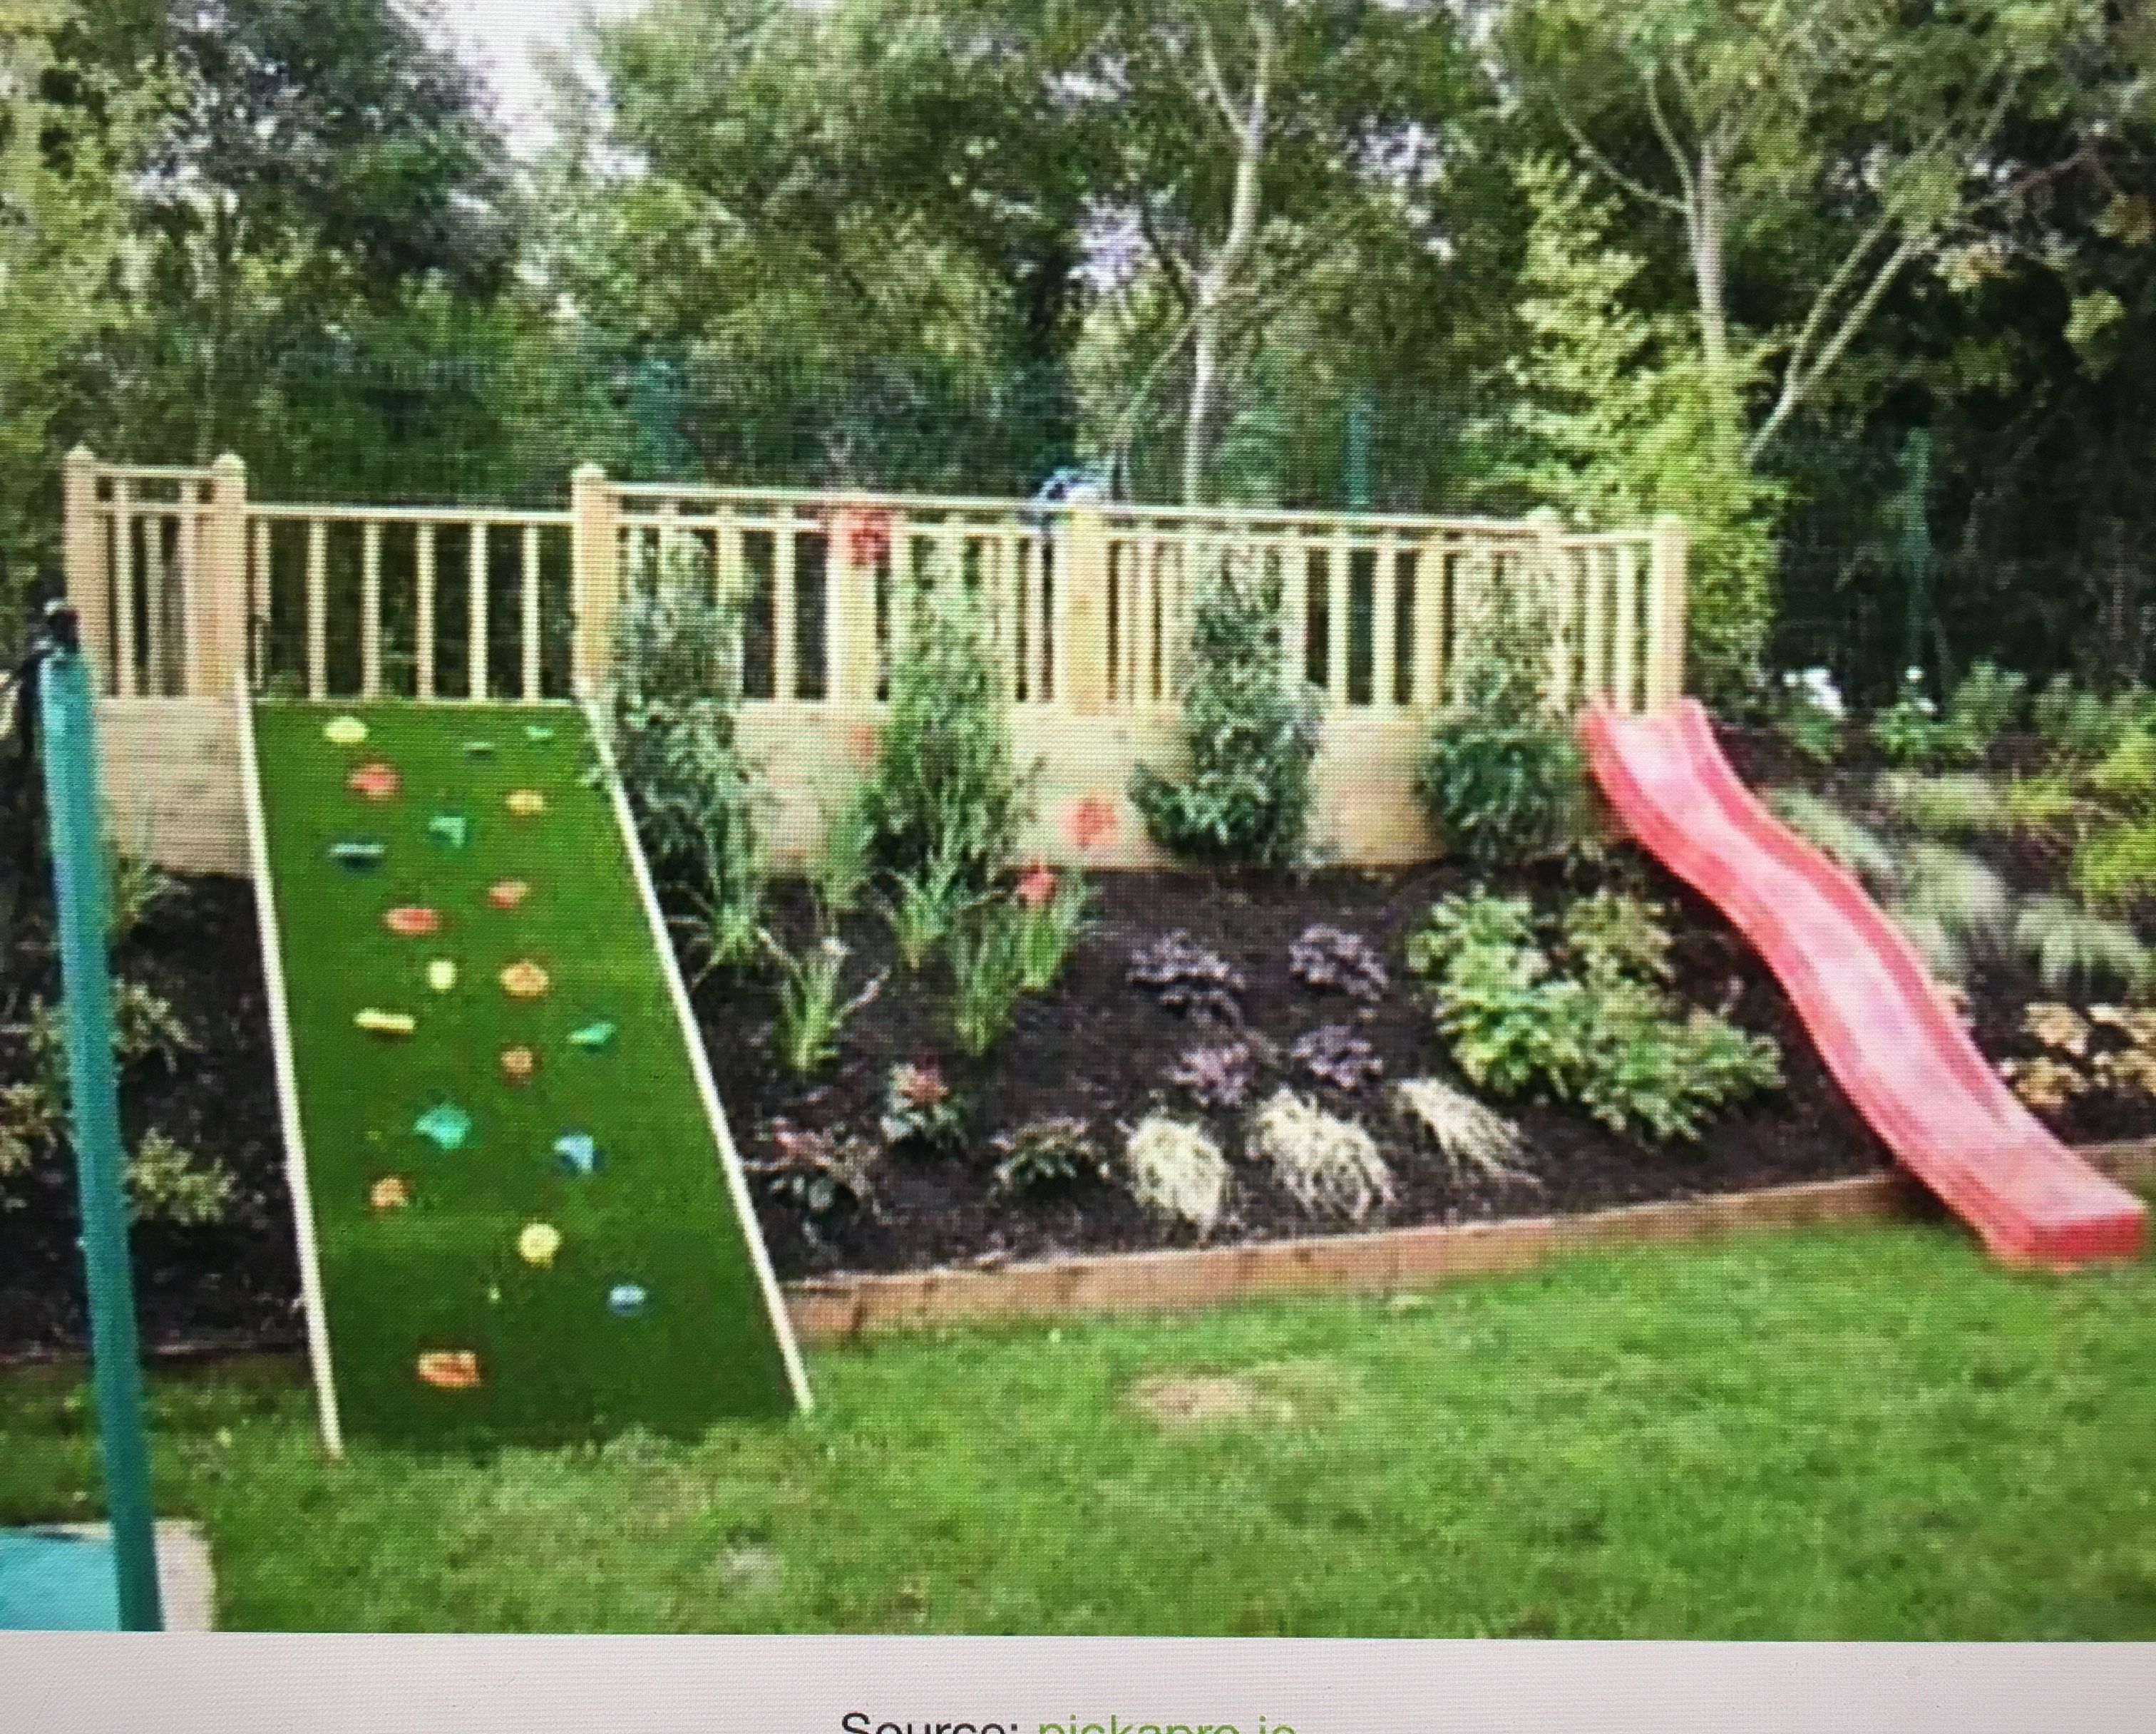 Pin by Tanya Newbold on Upper campus | Kid friendly ...